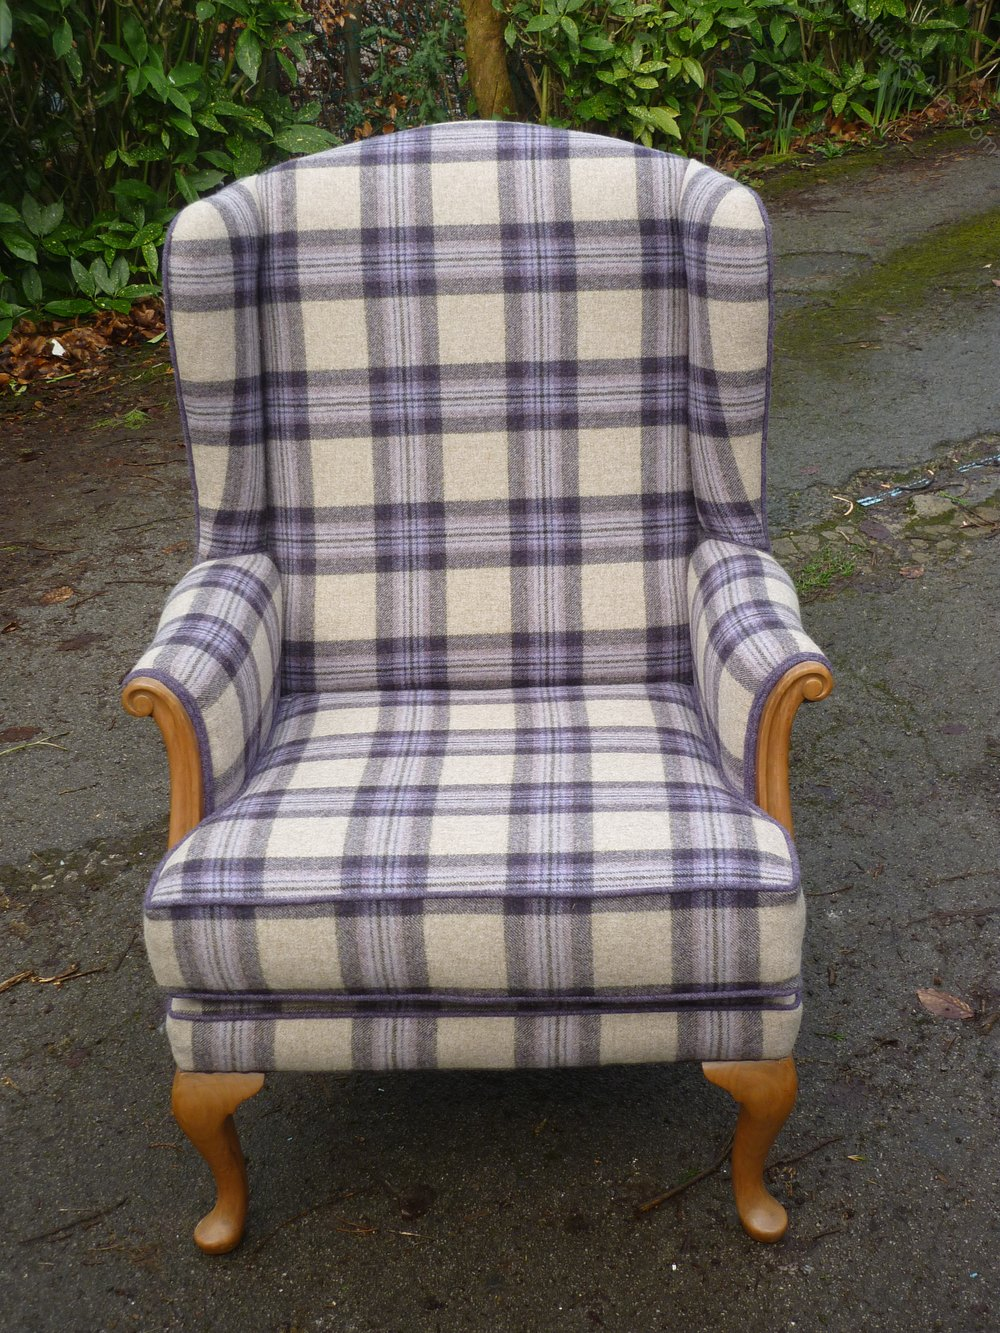 A Retro Criterion Cord Wing Arm Chair Restored - Antiques Atlas